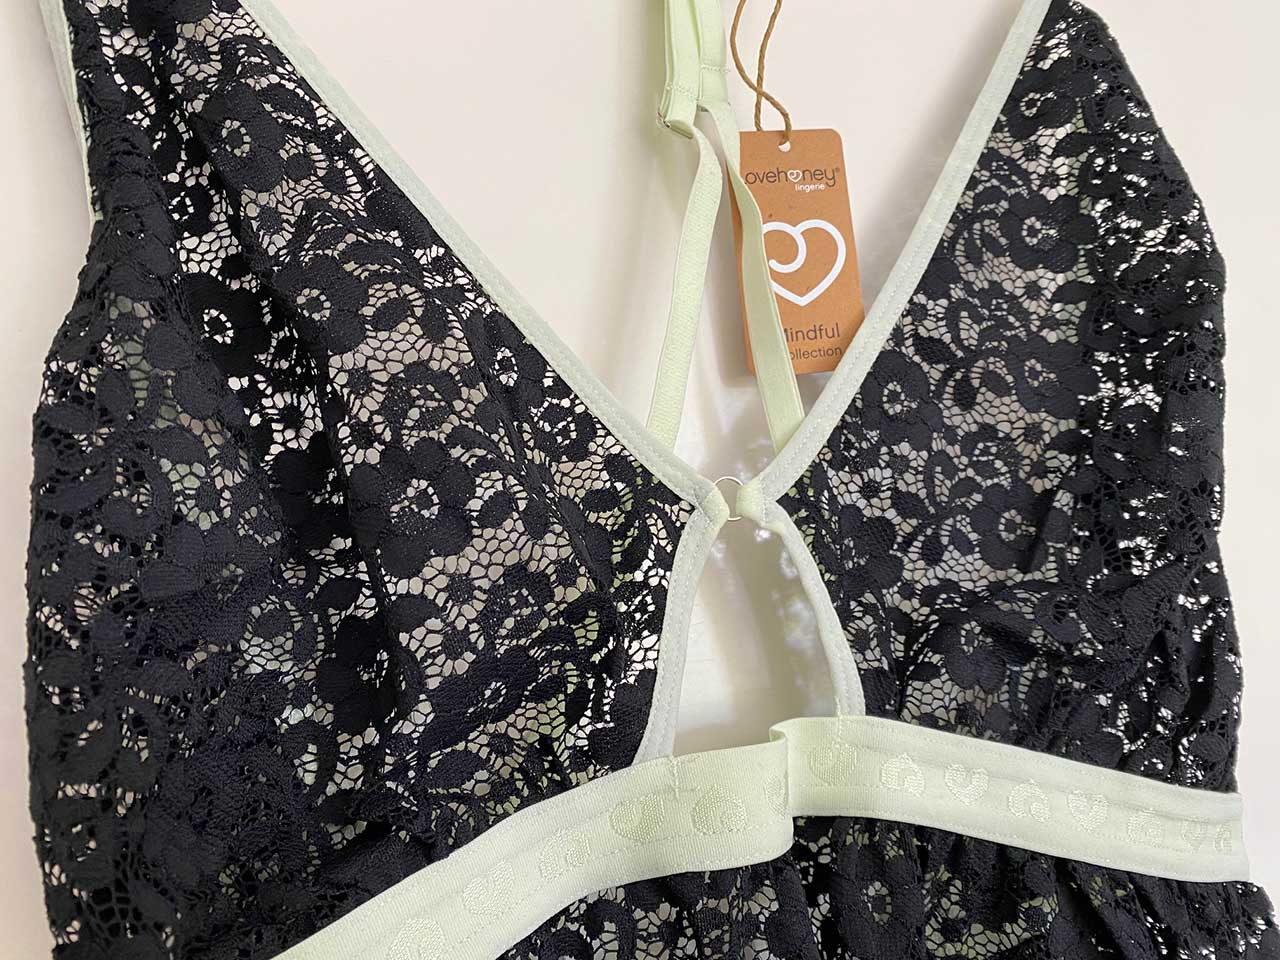 Details des Ausschnitts Lovehoney Mindful Lace Green Teddy